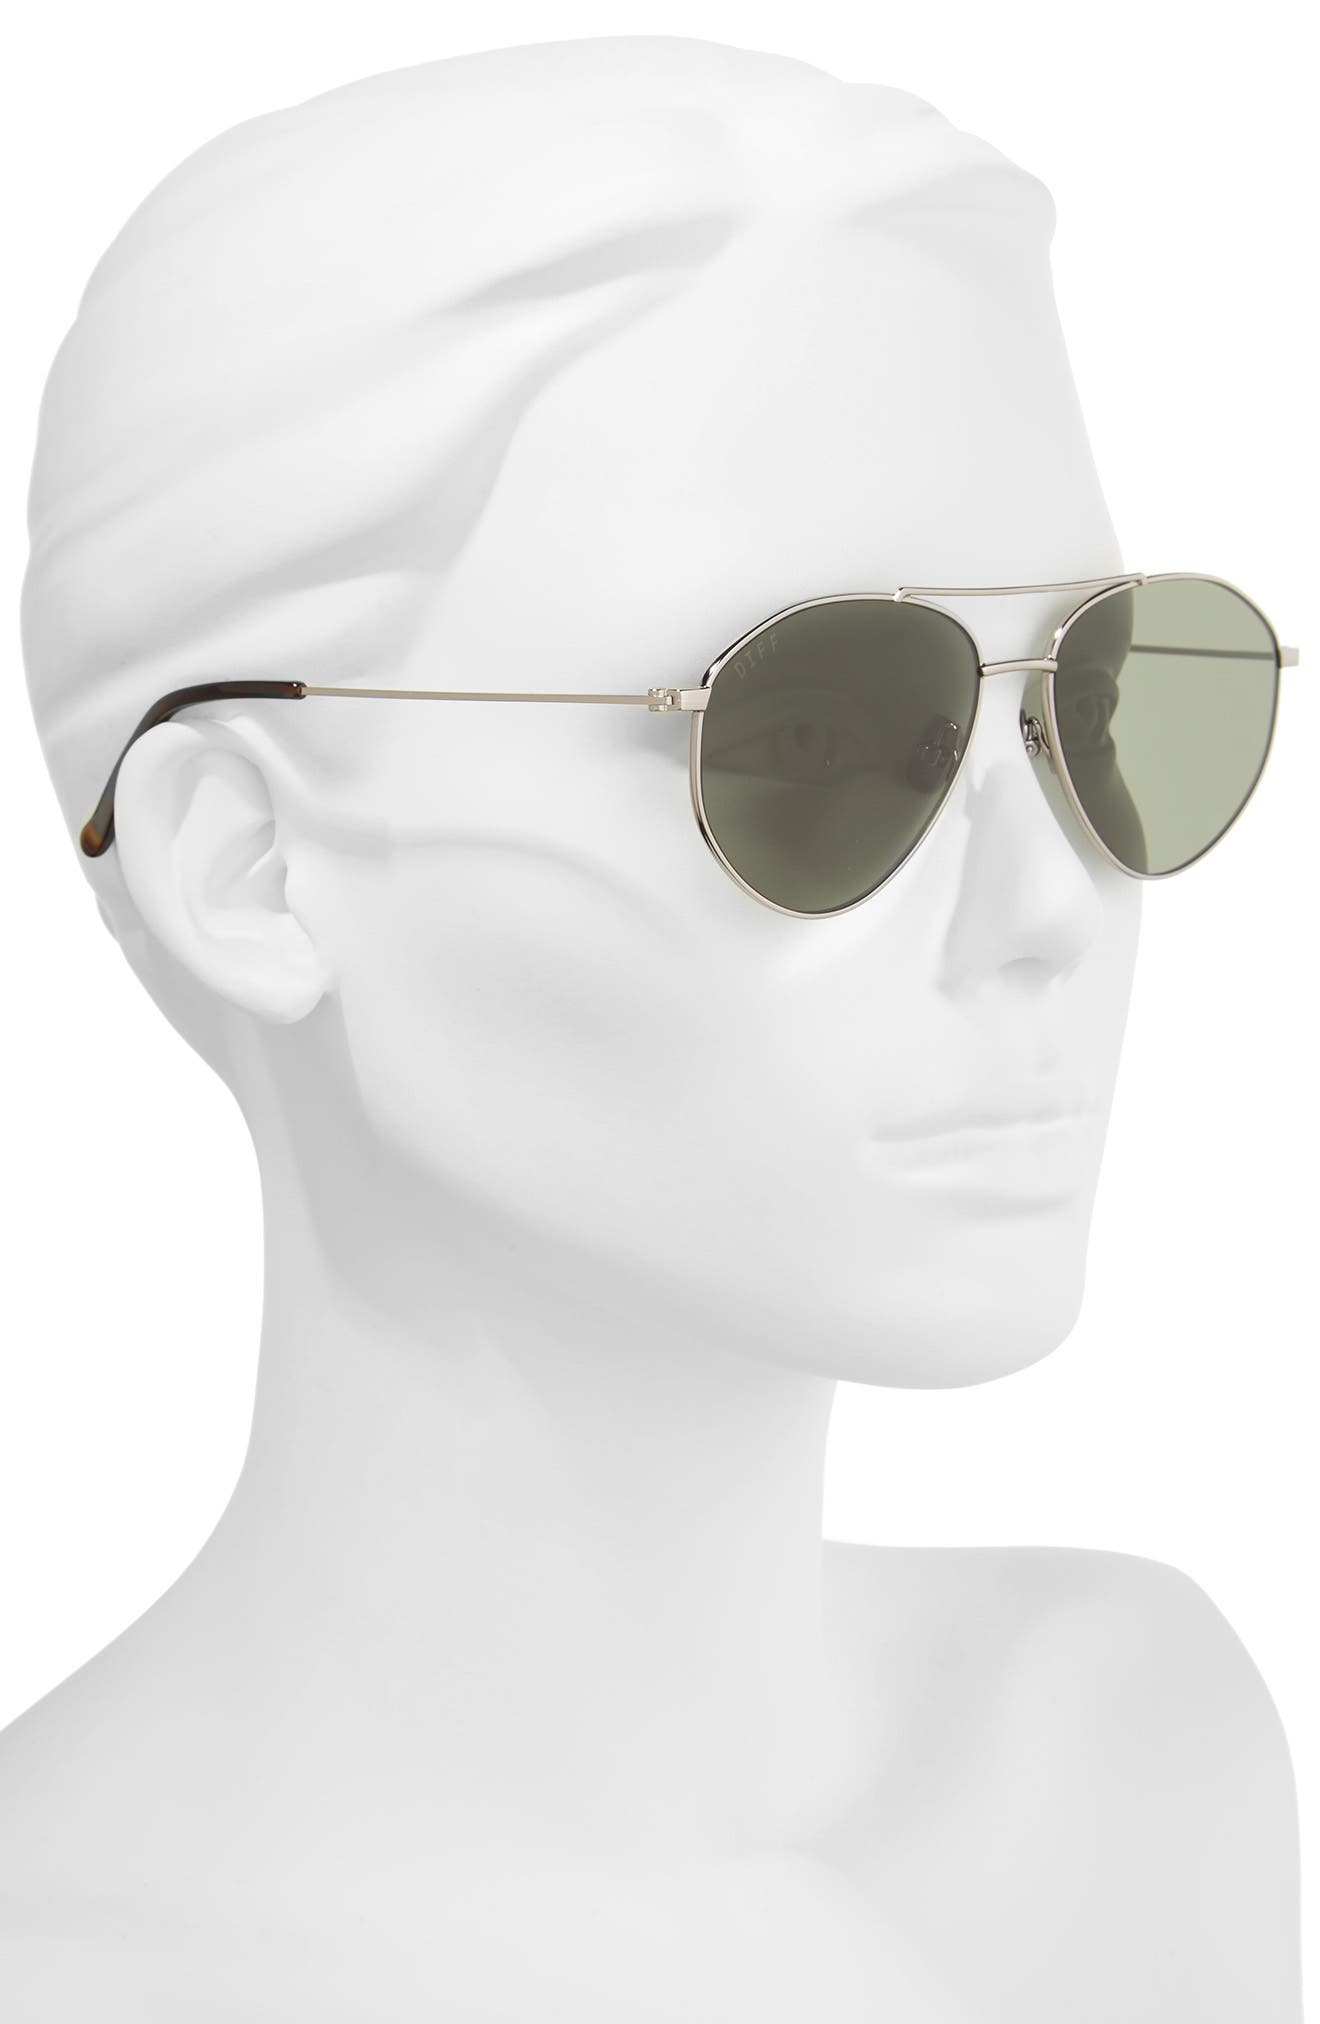 Scout 53mm Aviator Sunglasses,                             Alternate thumbnail 2, color,                             Light Gunmetal/ Green